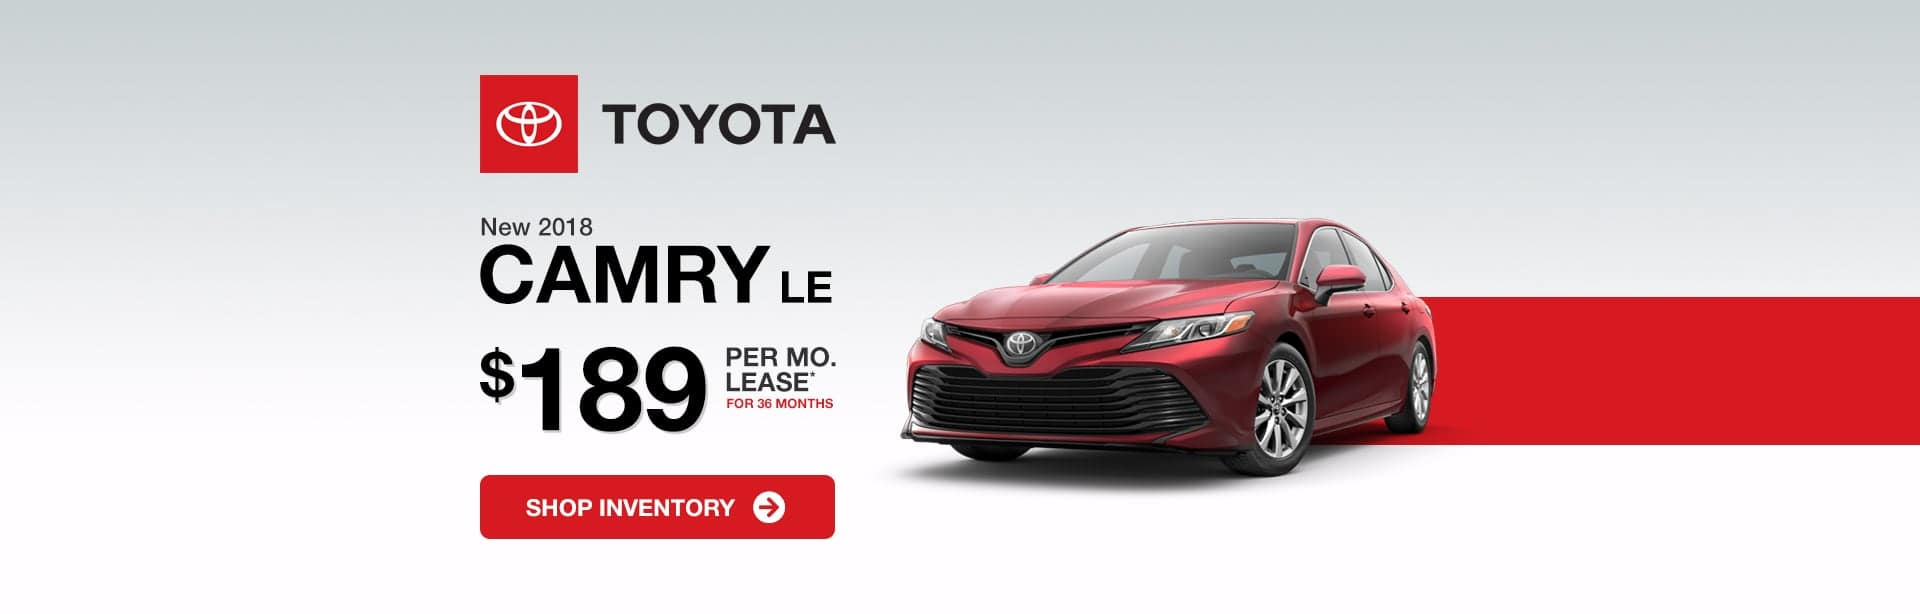 Toyota Camry Lease Special near Greenwood, Indiana